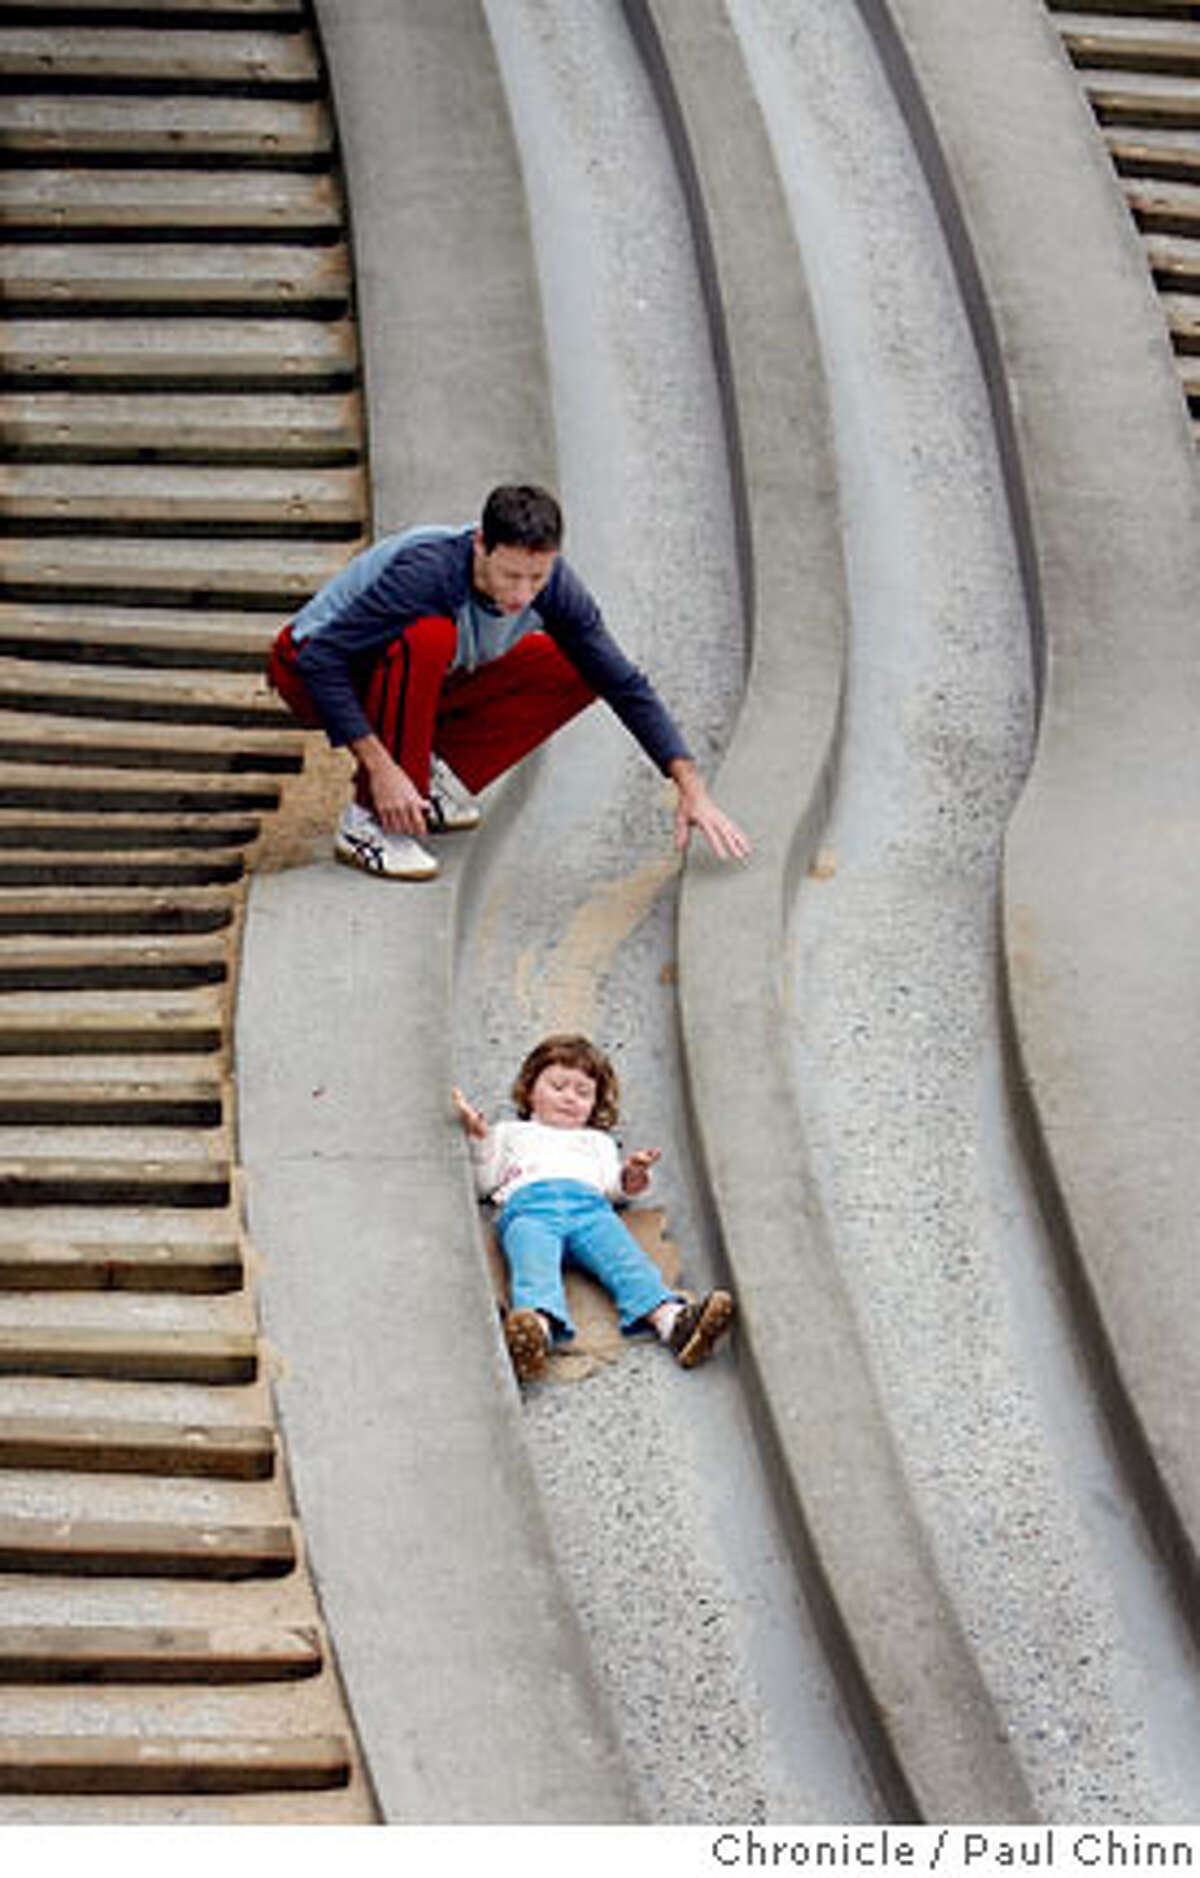 Gil Heiman helps his daughter Ines, 3, slip down the concrete slide at the Children's Playground which reopened at Golden Gate Park in San Francisco, Calif. on Saturday, July 14, 2007. The $3.8 million renovation project on the playground, that originally opened in 1887, took a year-and-a-half to complete. PAUL CHINN/The Chronicle ***Gil Heiman, Ines Heiman